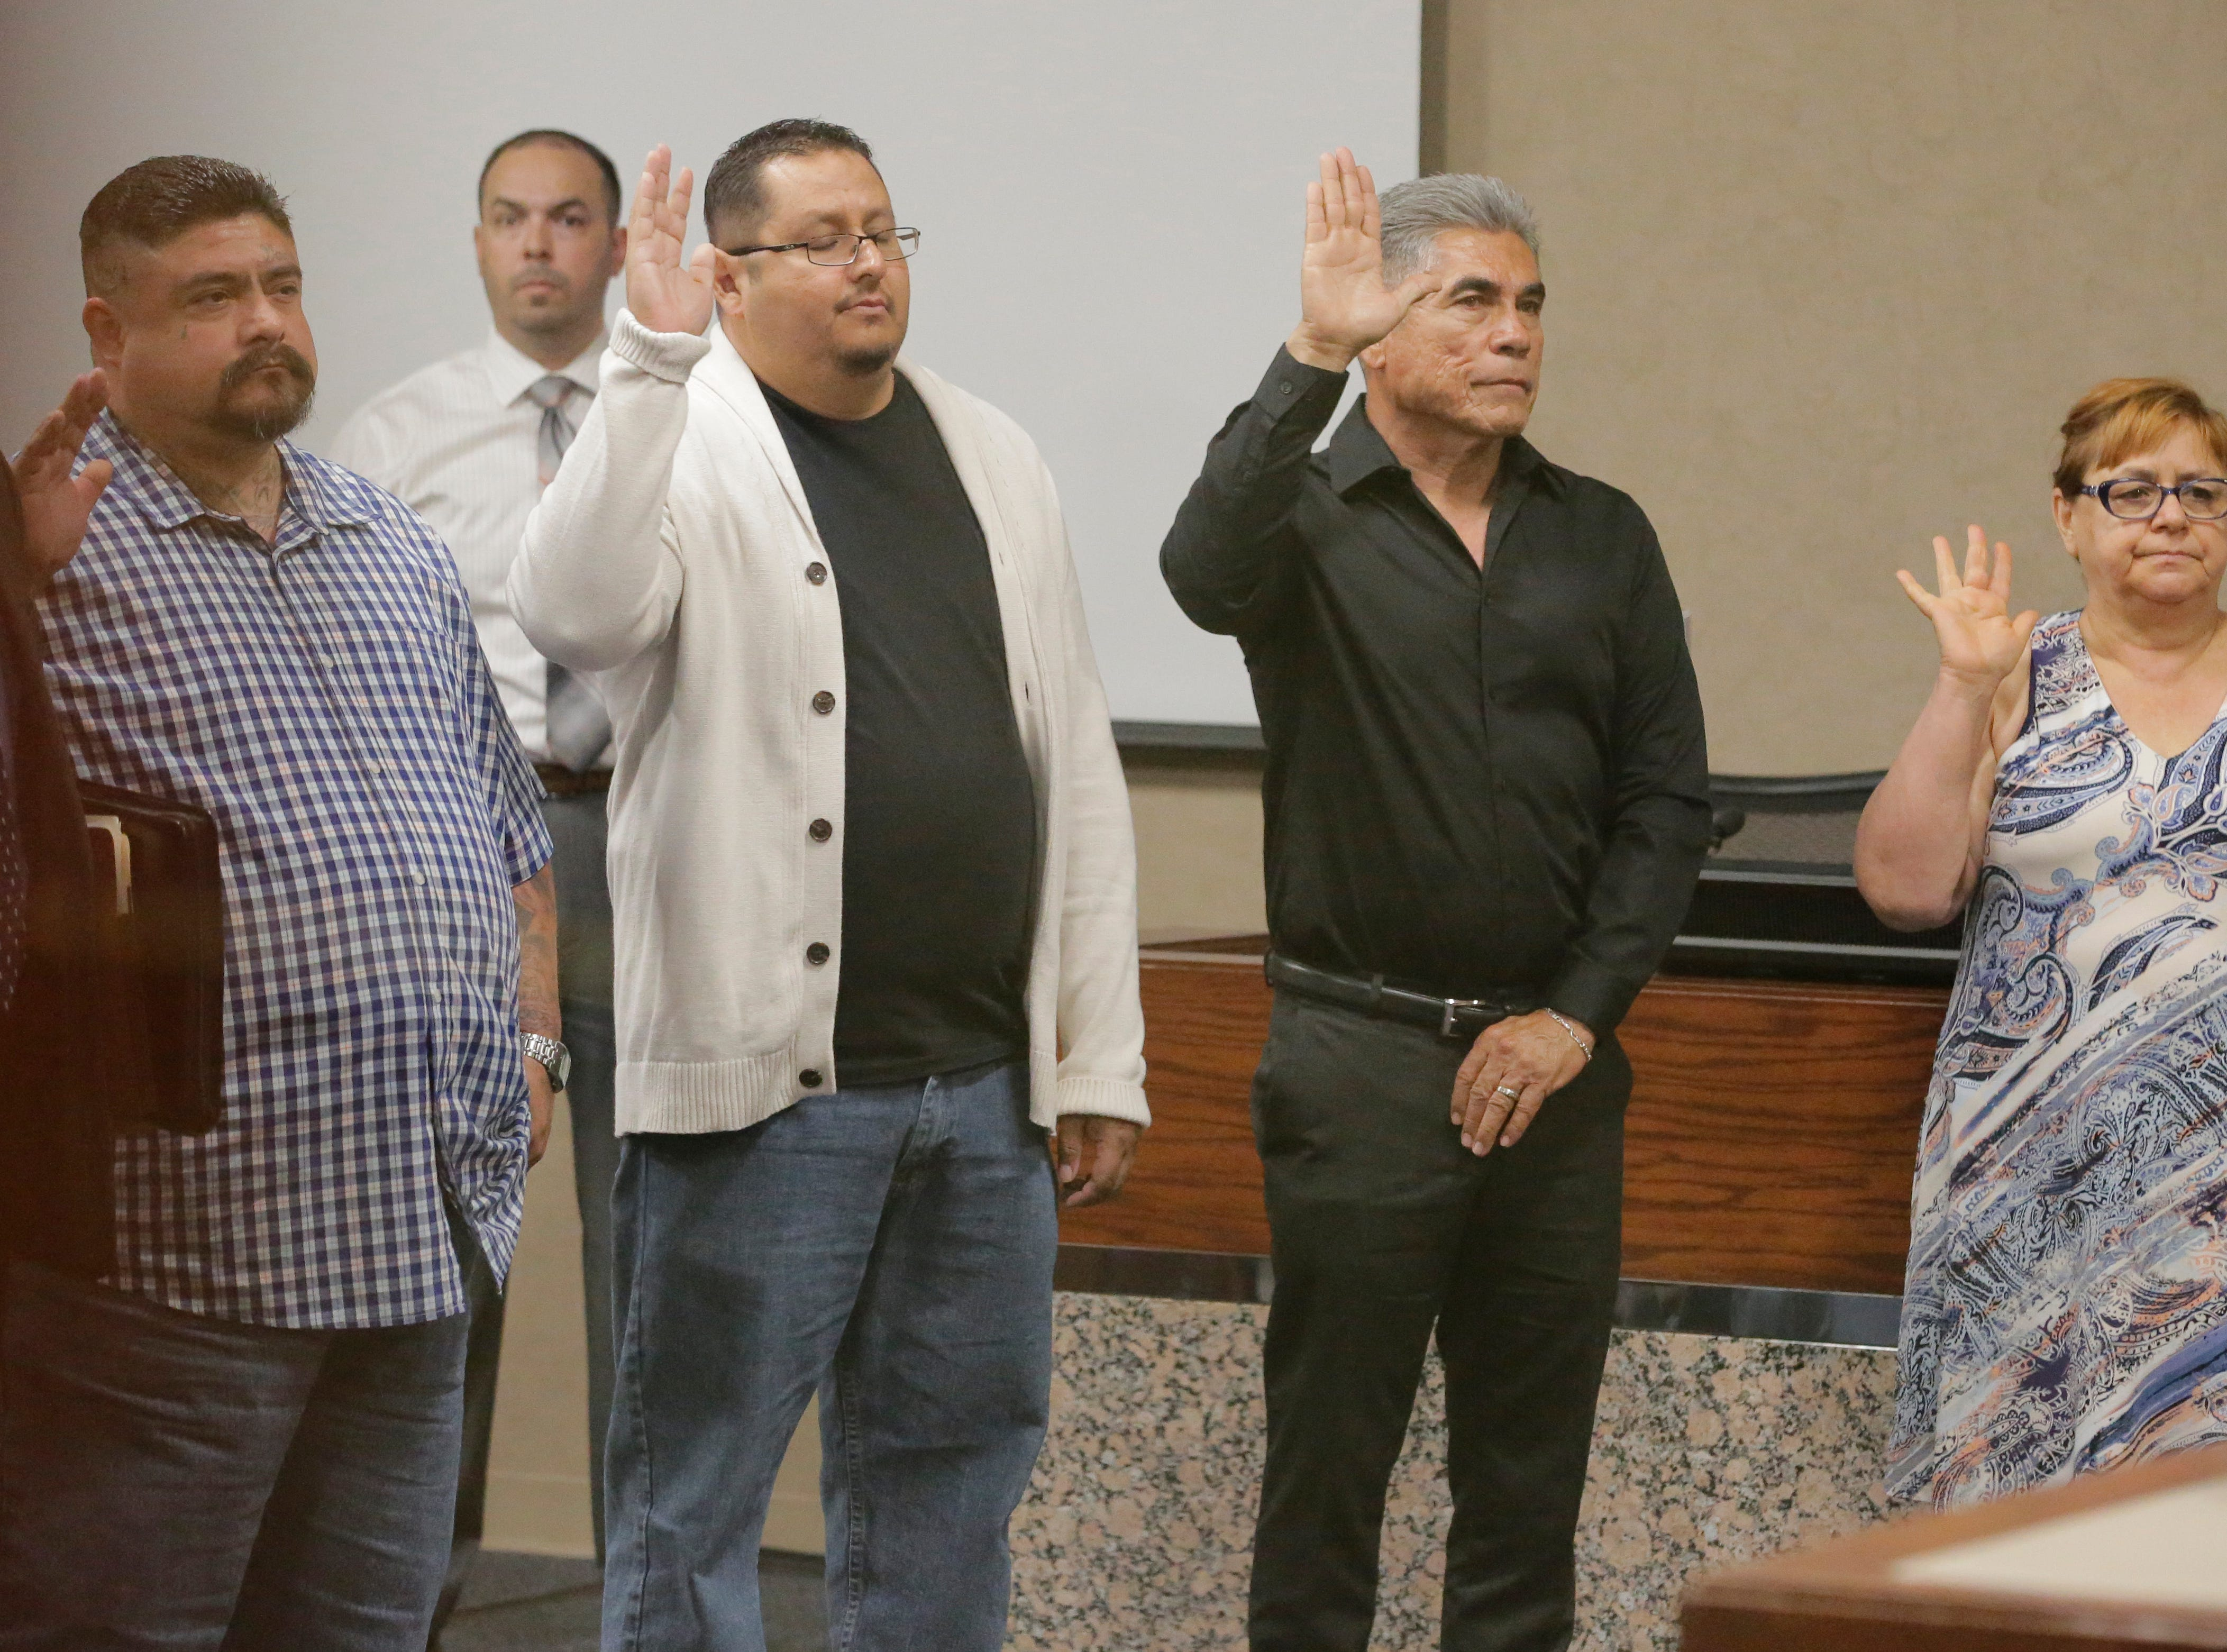 """Some of the witnesses that will be called to testify in the trial of Daniel Villegas stand before 409th District Court Judge Sam Medrano before being sworn in. Villegas is charged with Capital Murder in connection in the 1993 deaths of Armando """"Mando"""" Lazo and Bobby England. Villegas, who was 16 years old at the time, was allegedly a member of a street gang that shot at four teens, fatally striking Lazo and England on April 10, 1993."""